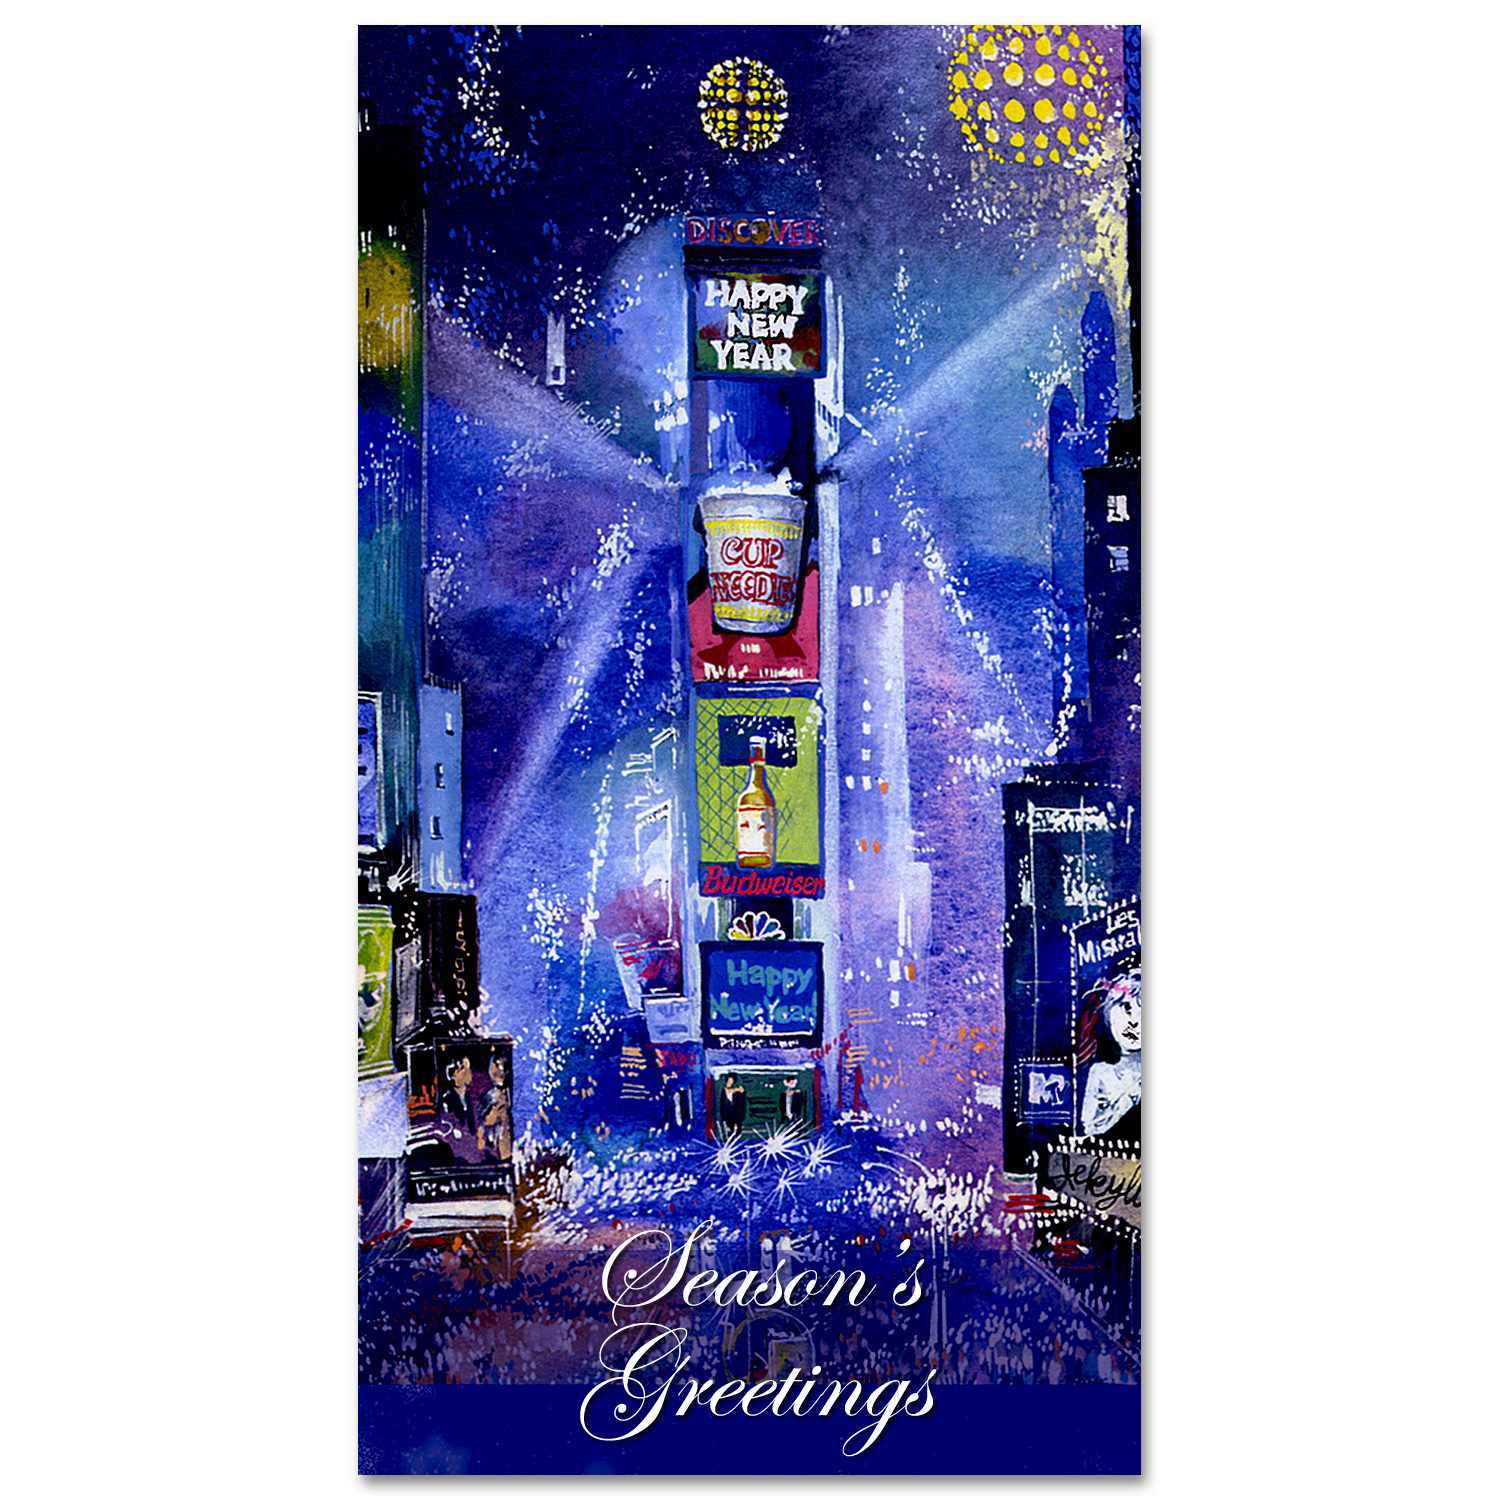 Times square new year celebration holidays money greeting cards times square new year celebration holidays money greeting cards holders set of 6 m4hsunfo